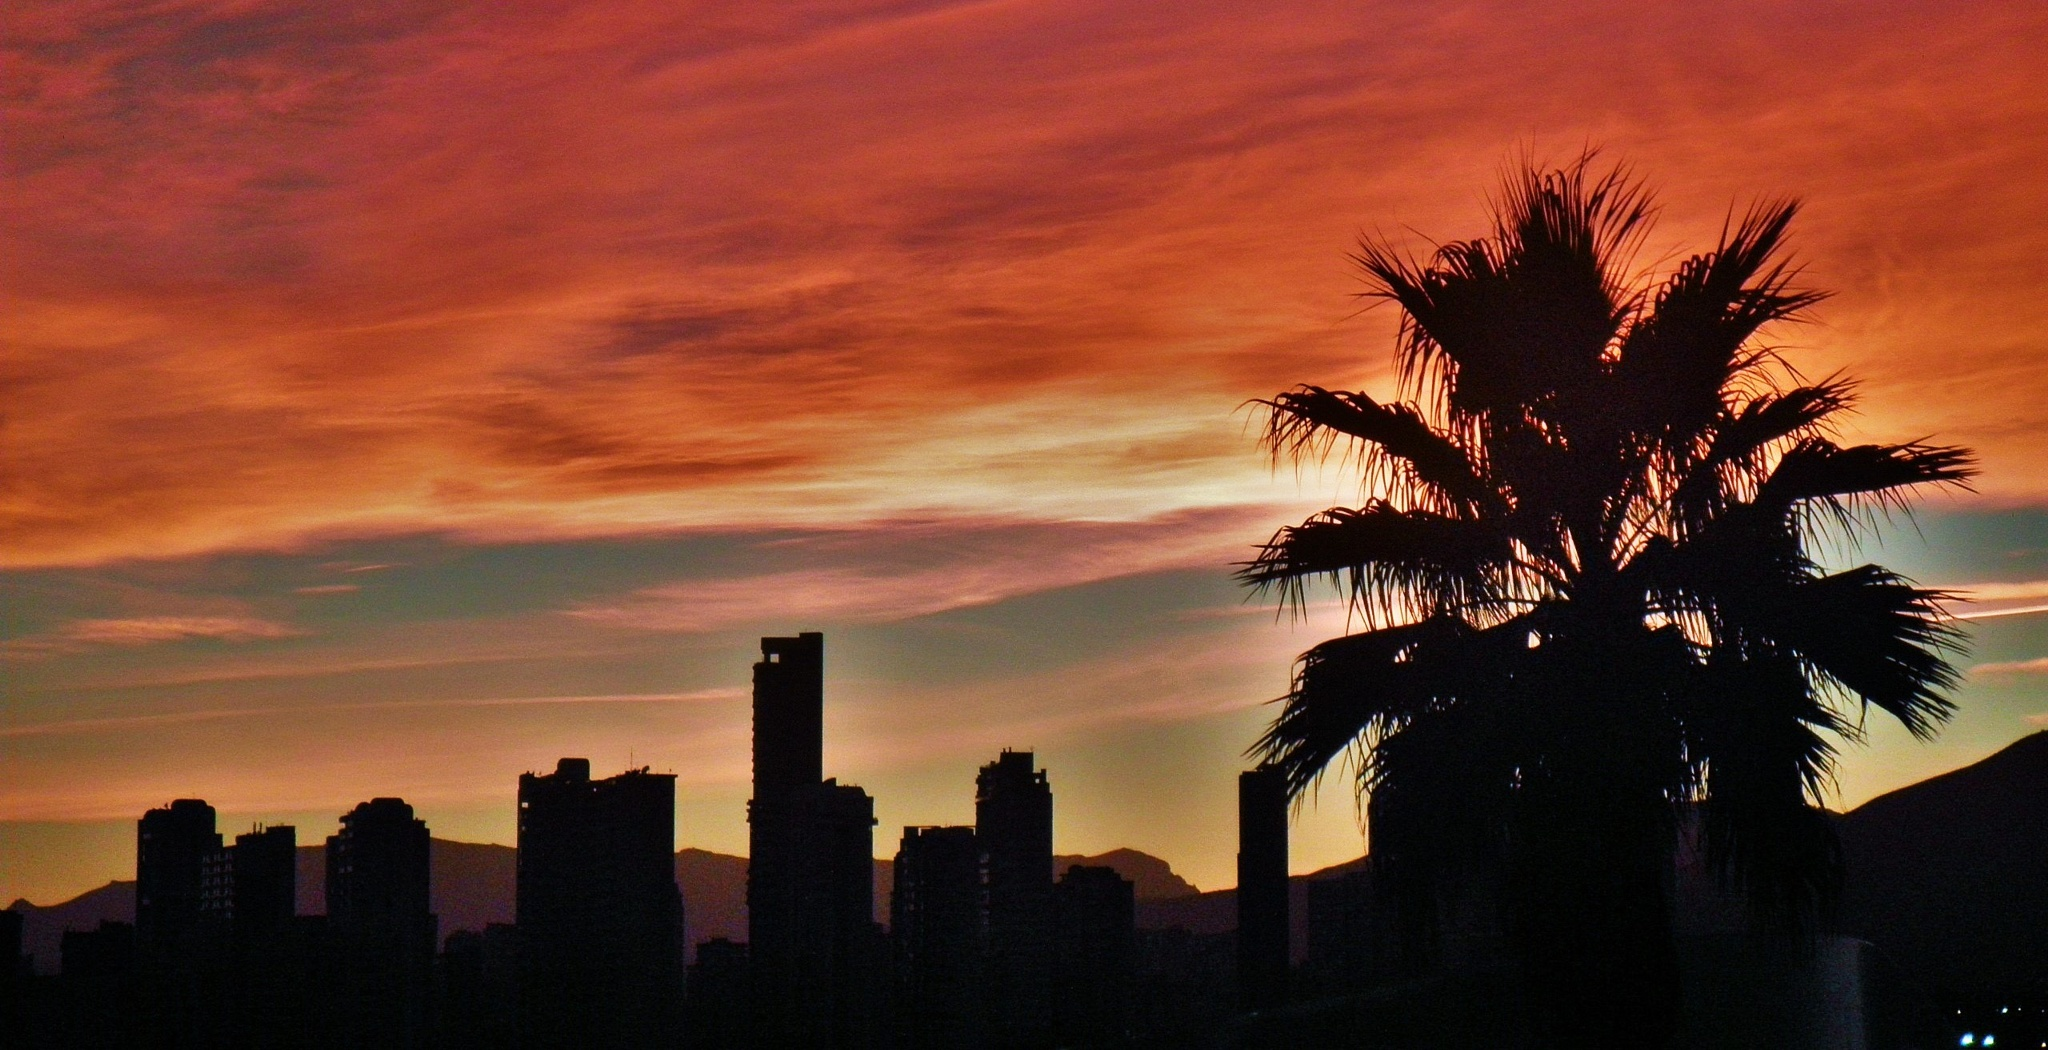 'Benidorm Sunset' by miket